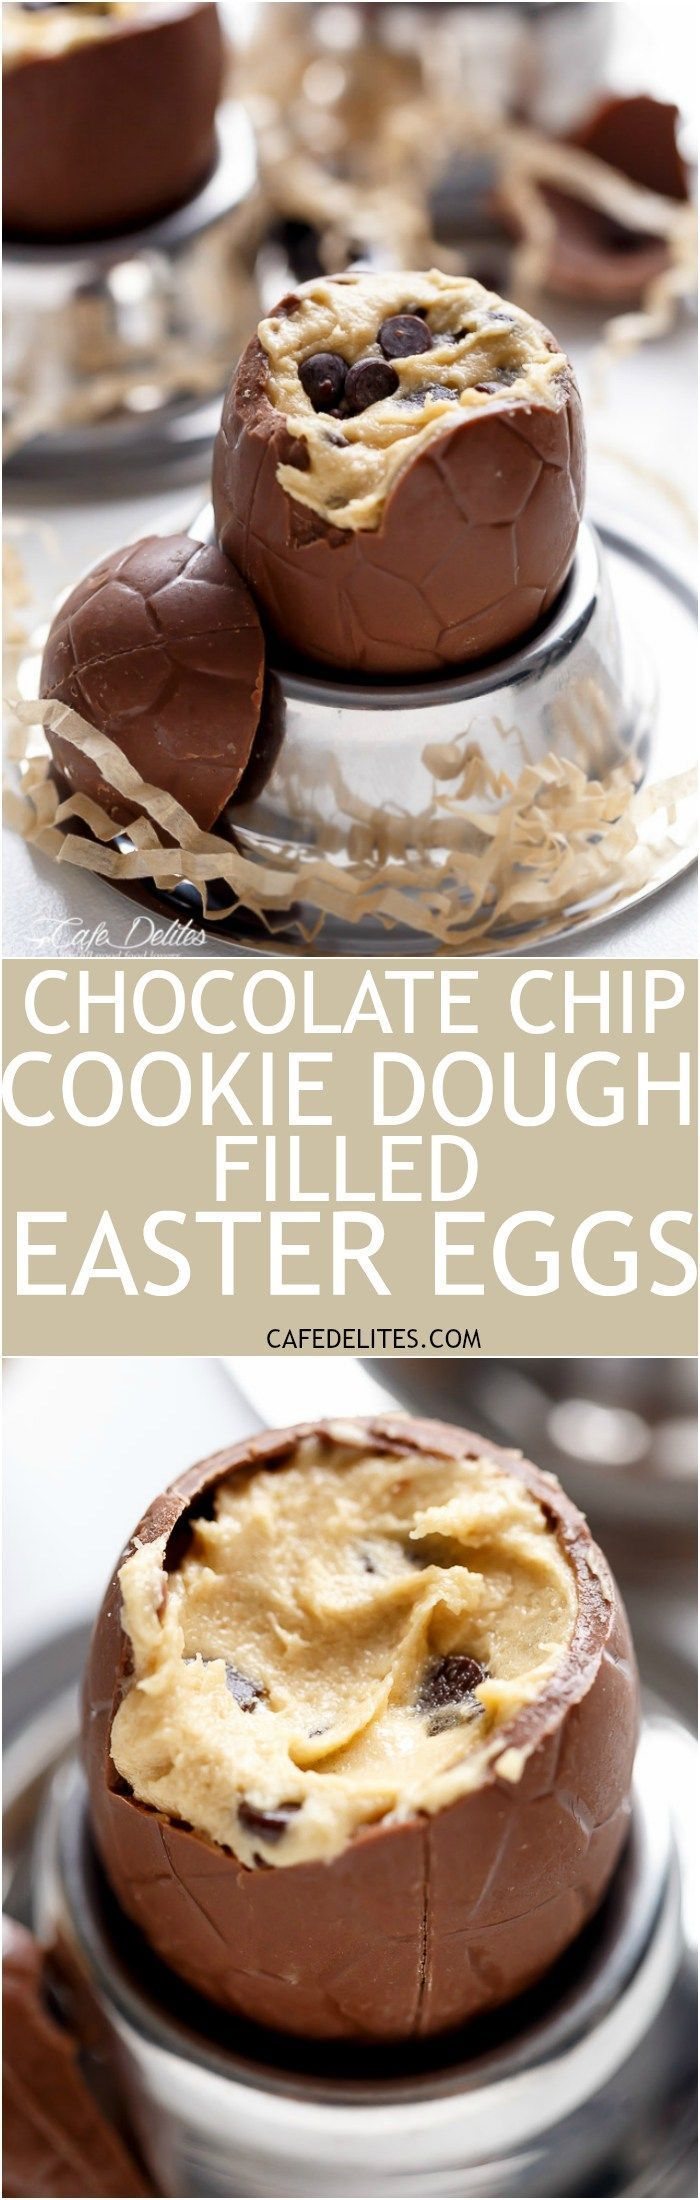 Chocolate Chip Cookie Dough Filled Easter Eggs! Perfect for any event, party OR to use up those Easter eggs in a completely decadent way! | http://cafedelites.com